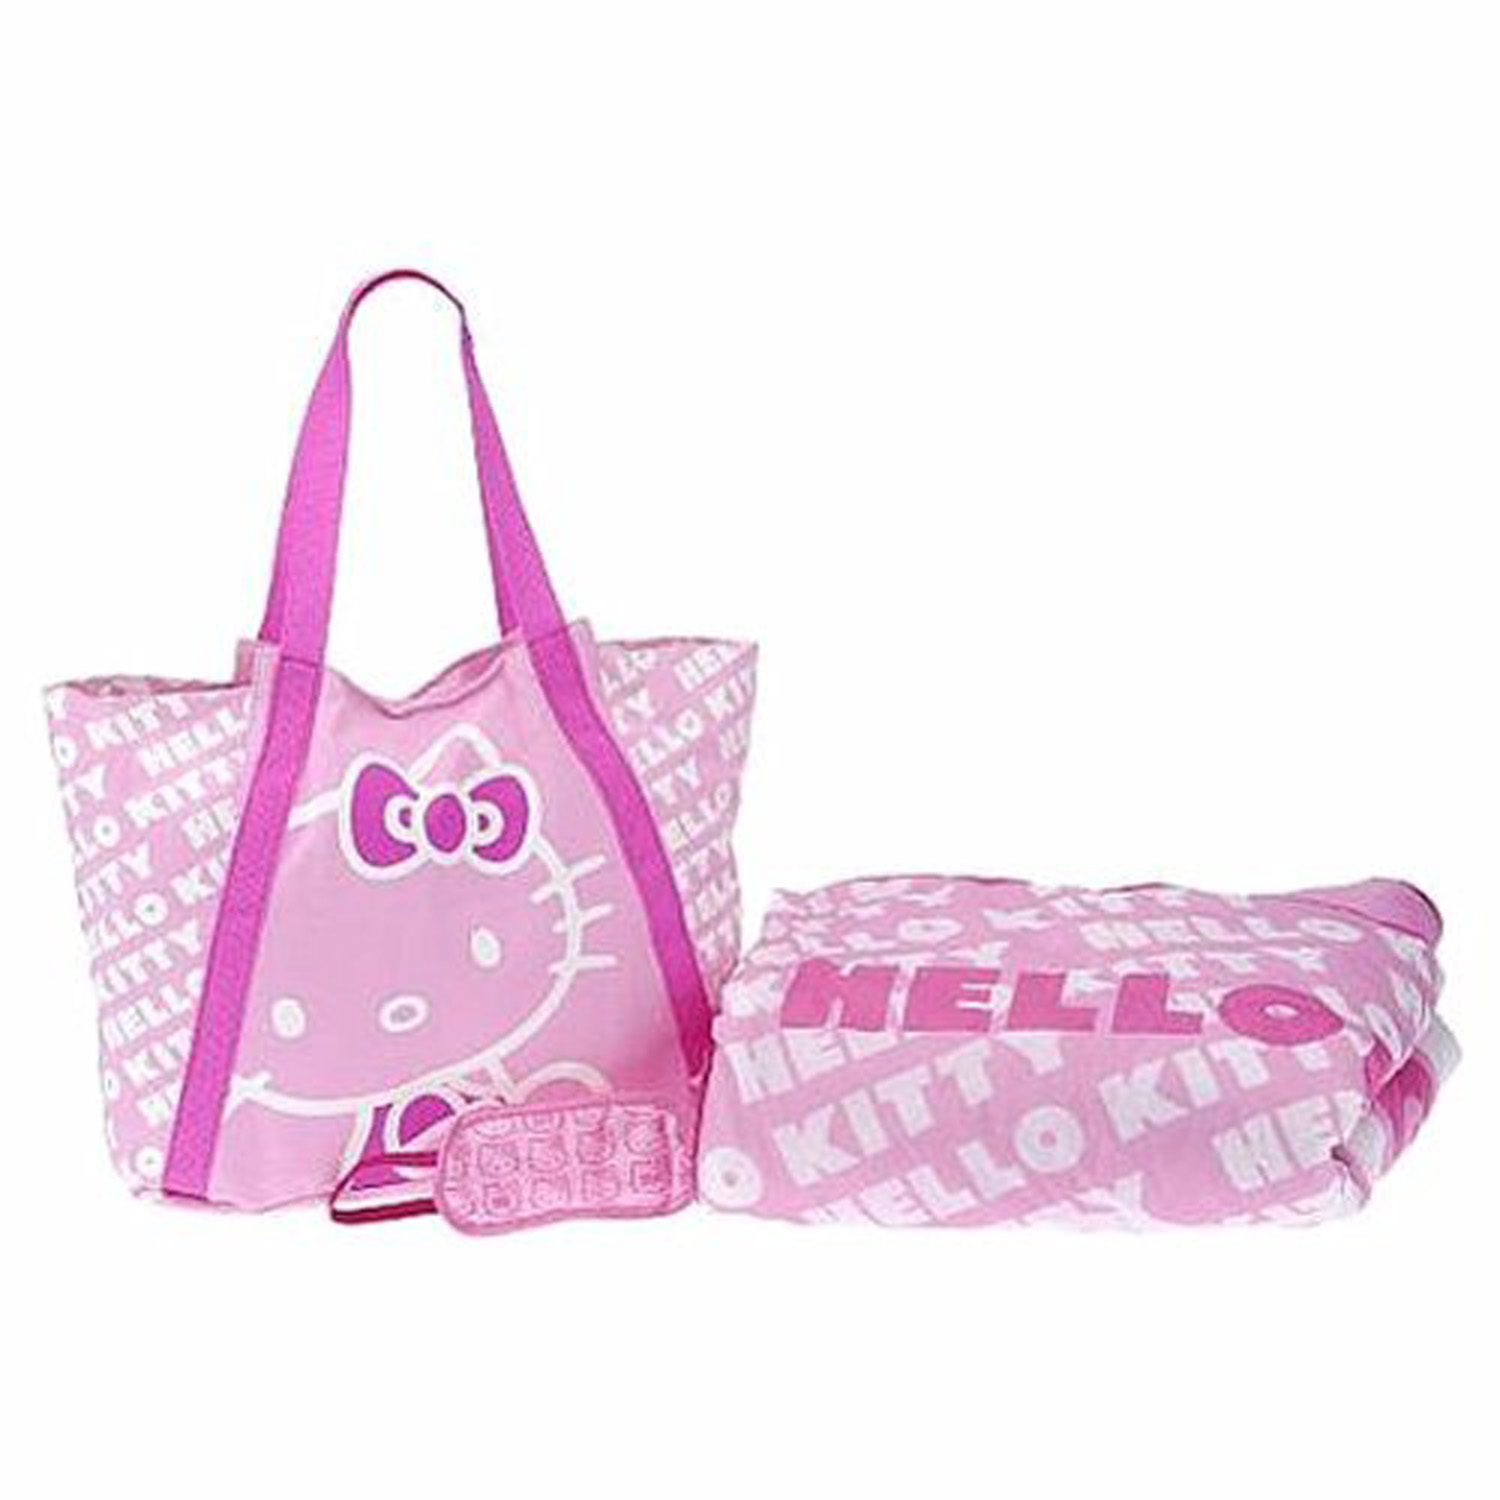 Sanrio Hello Kitty Sleepover Bag - Hello Kitty Slumber Bag (Pink)